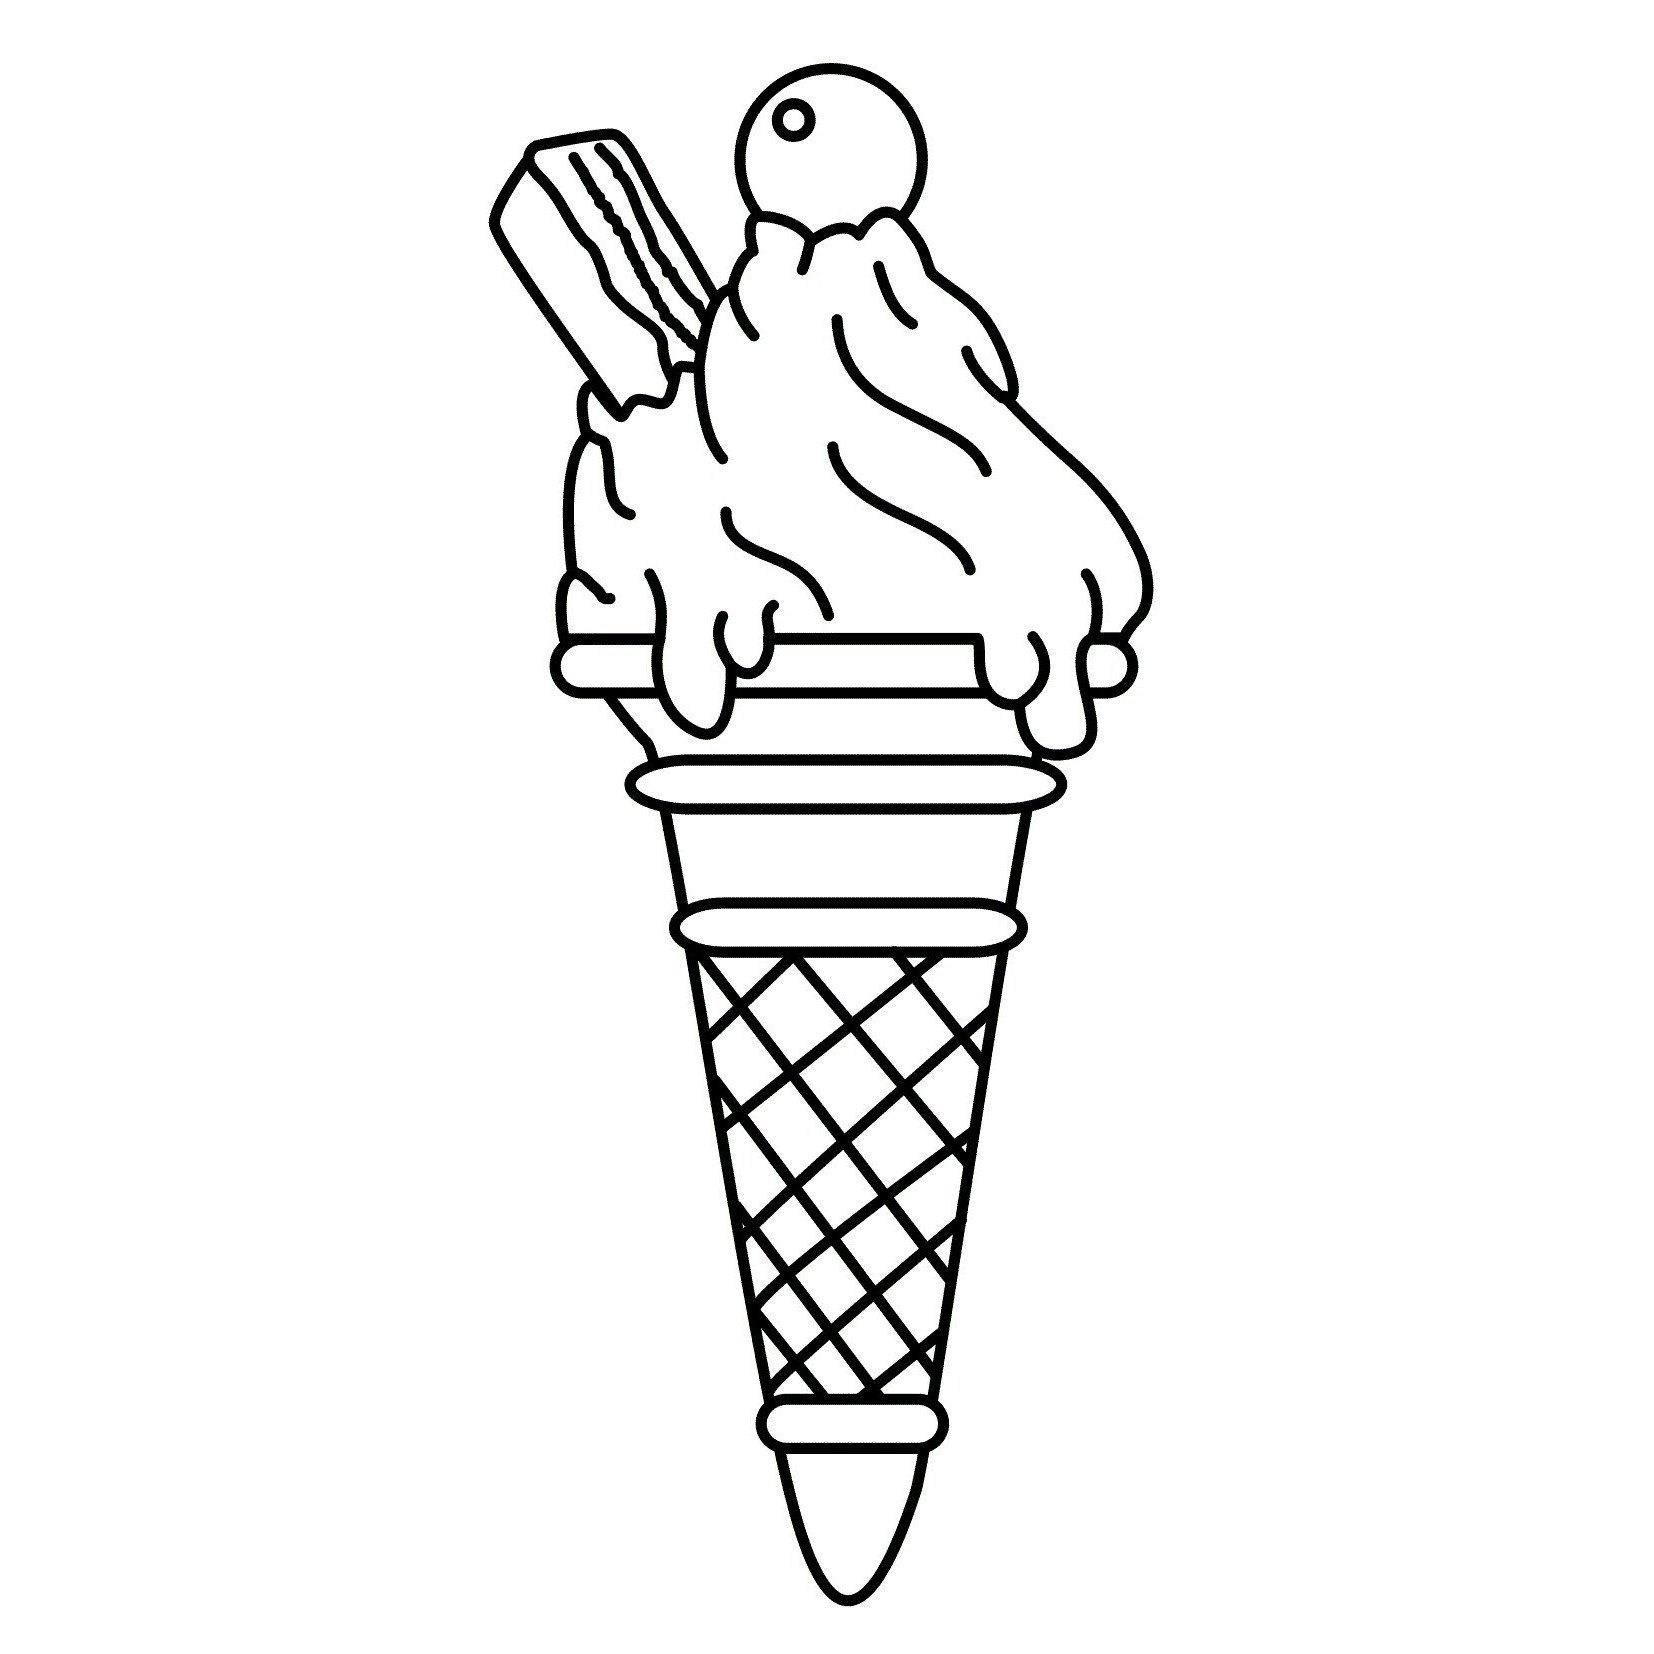 Icecream Cone Coloring Pages Best Of Coloring Pages Ice Cream